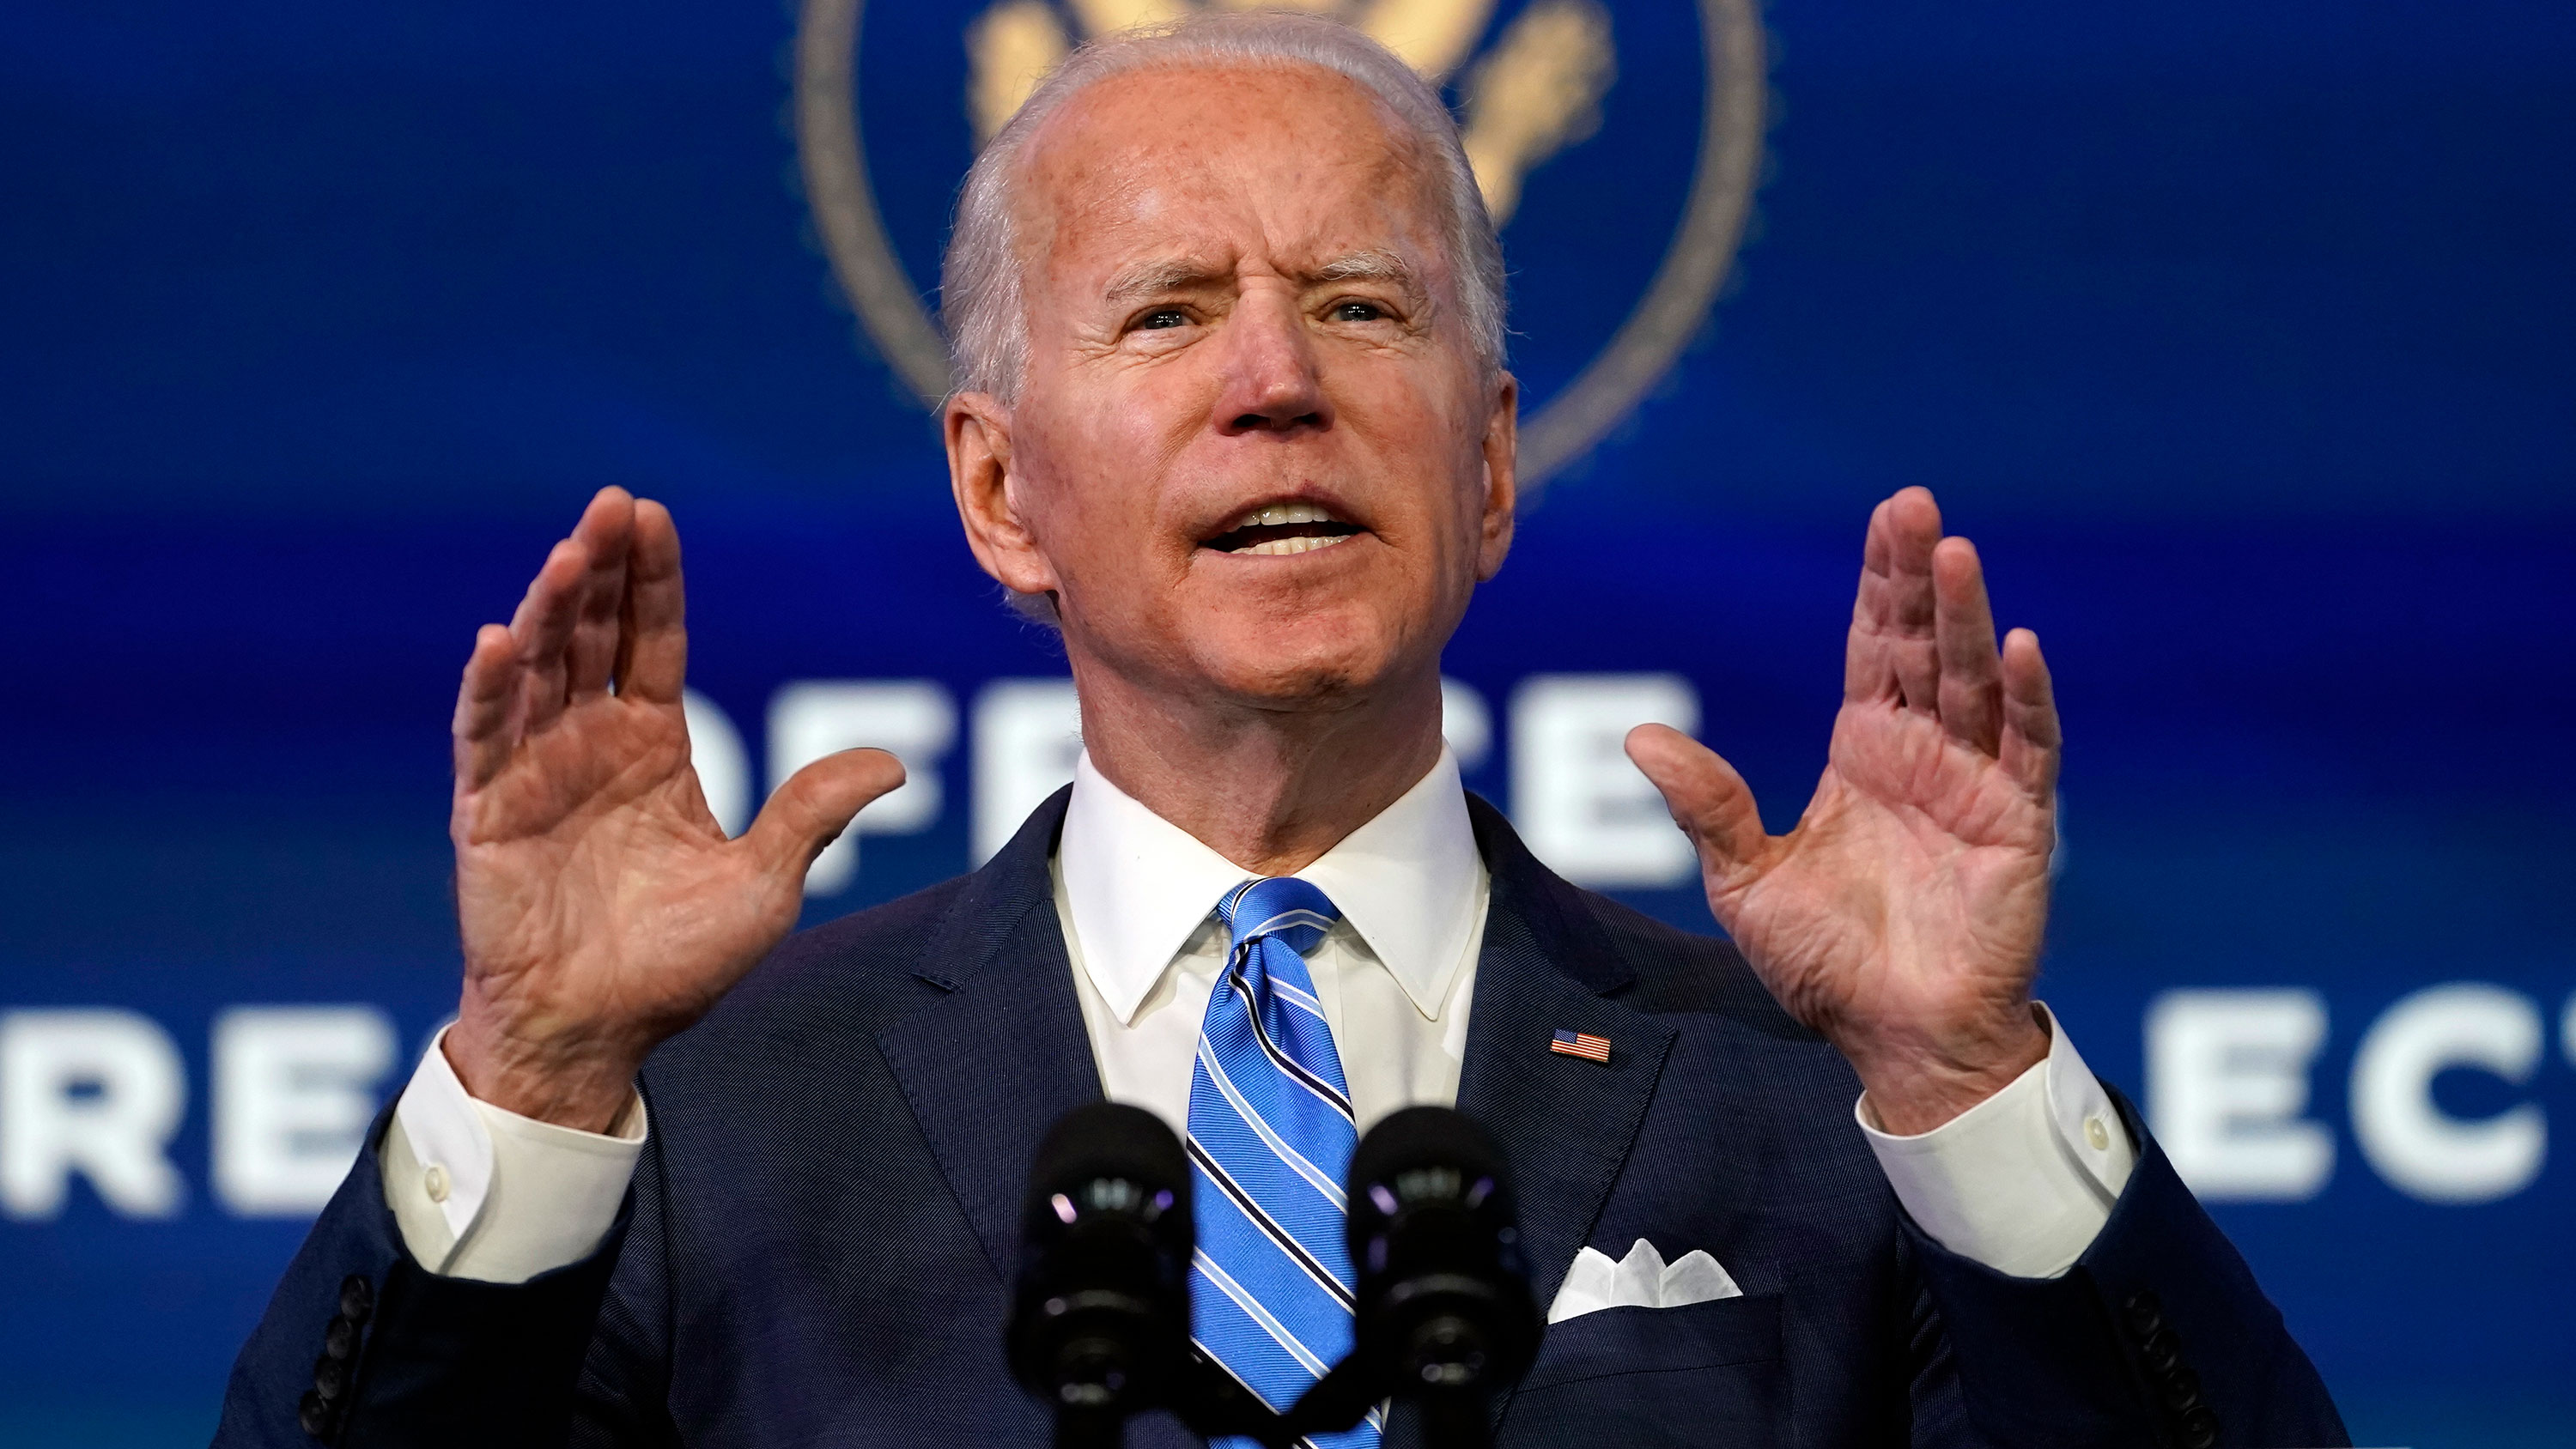 When will Americans see the aid from Biden's relief proposal? It's up to Congress